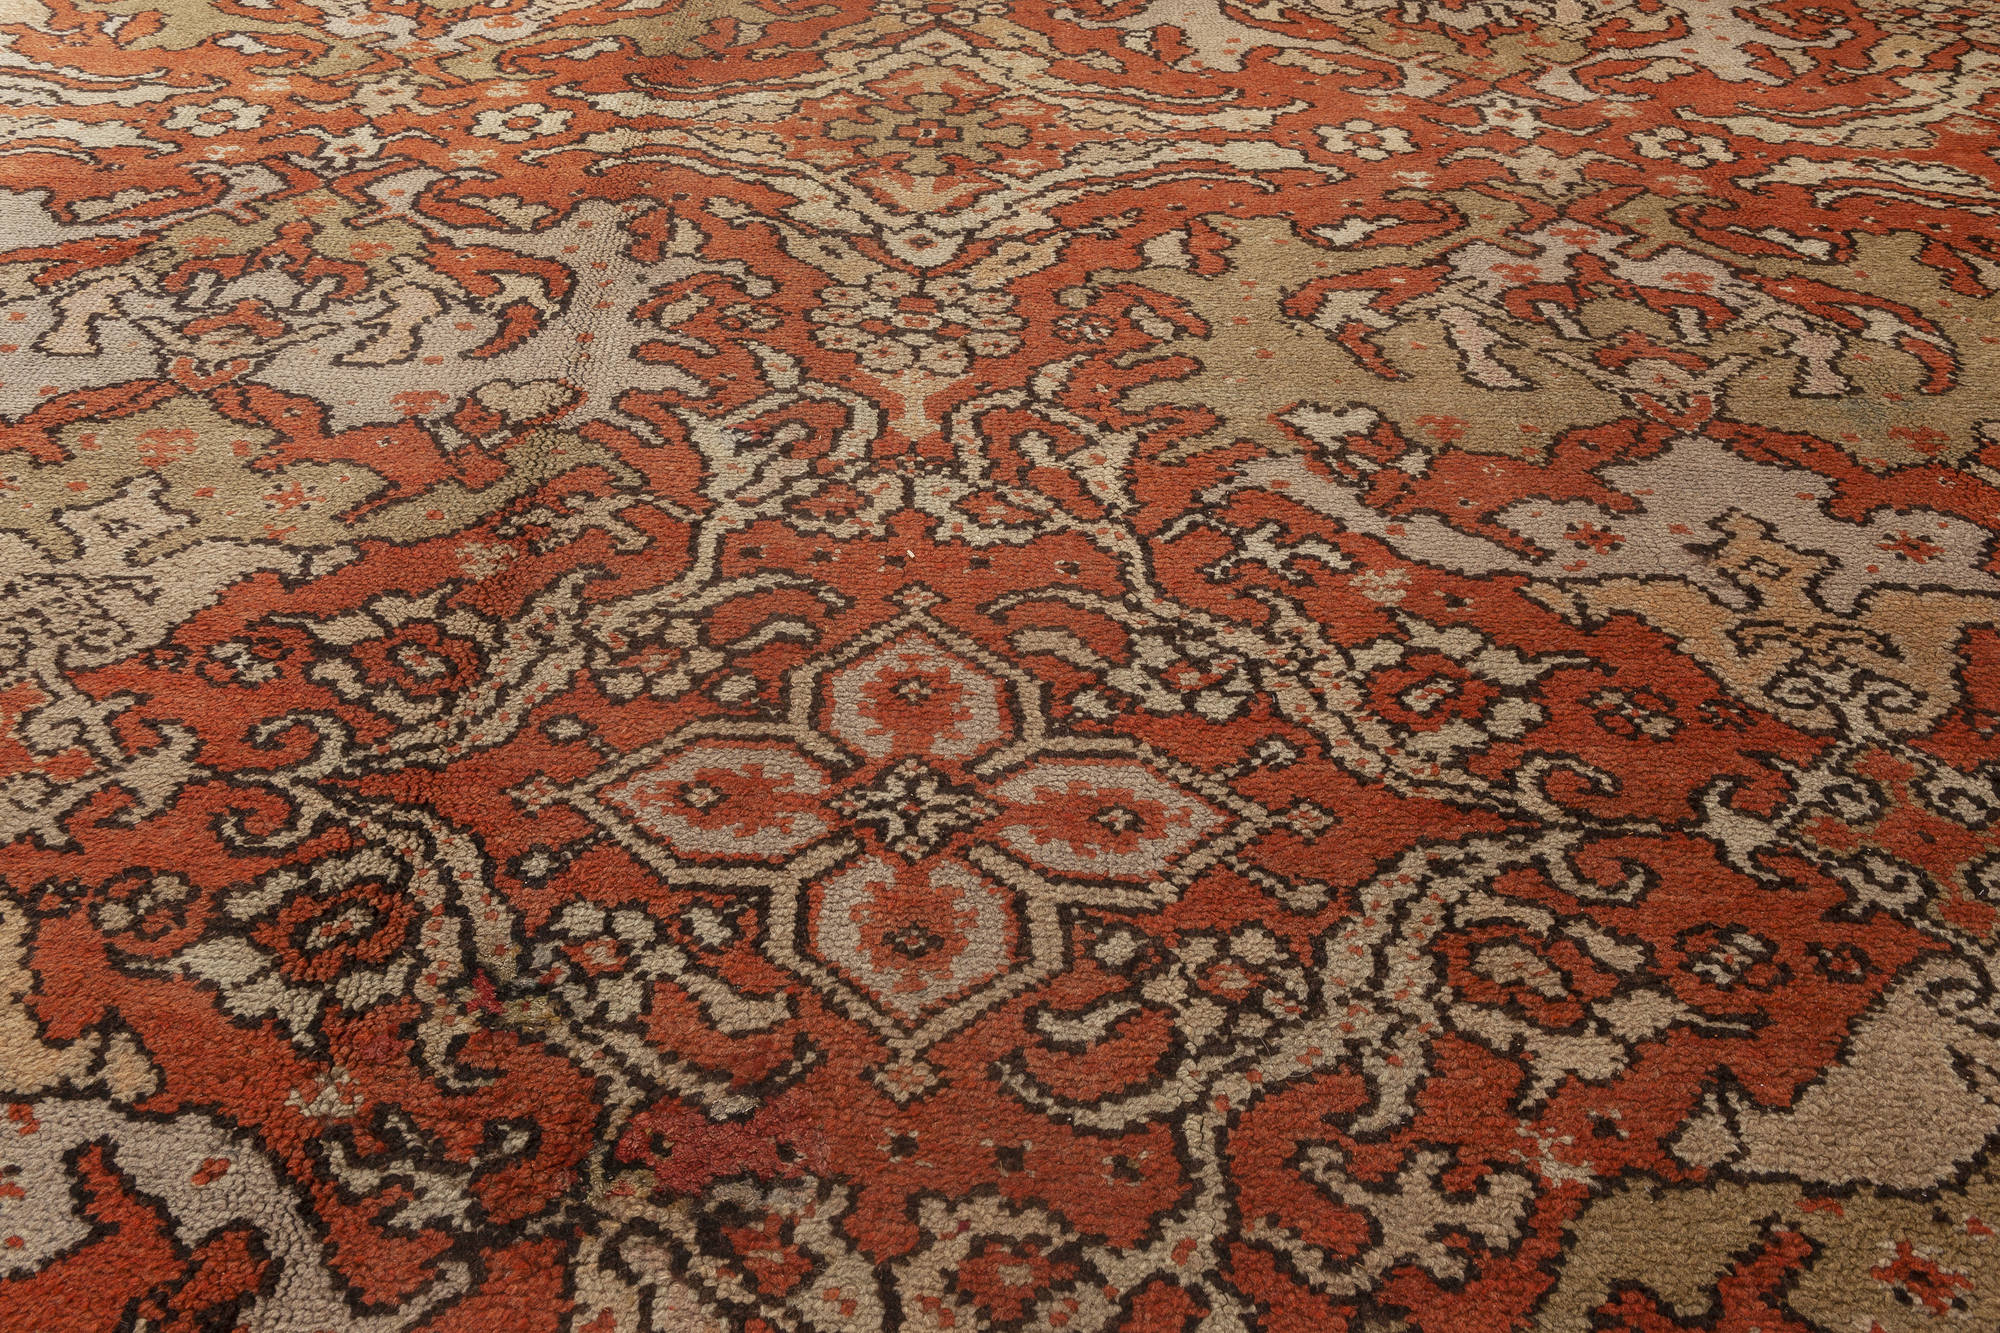 Oversized Vintage English Axminster Carpet Bb1796 By Dlb